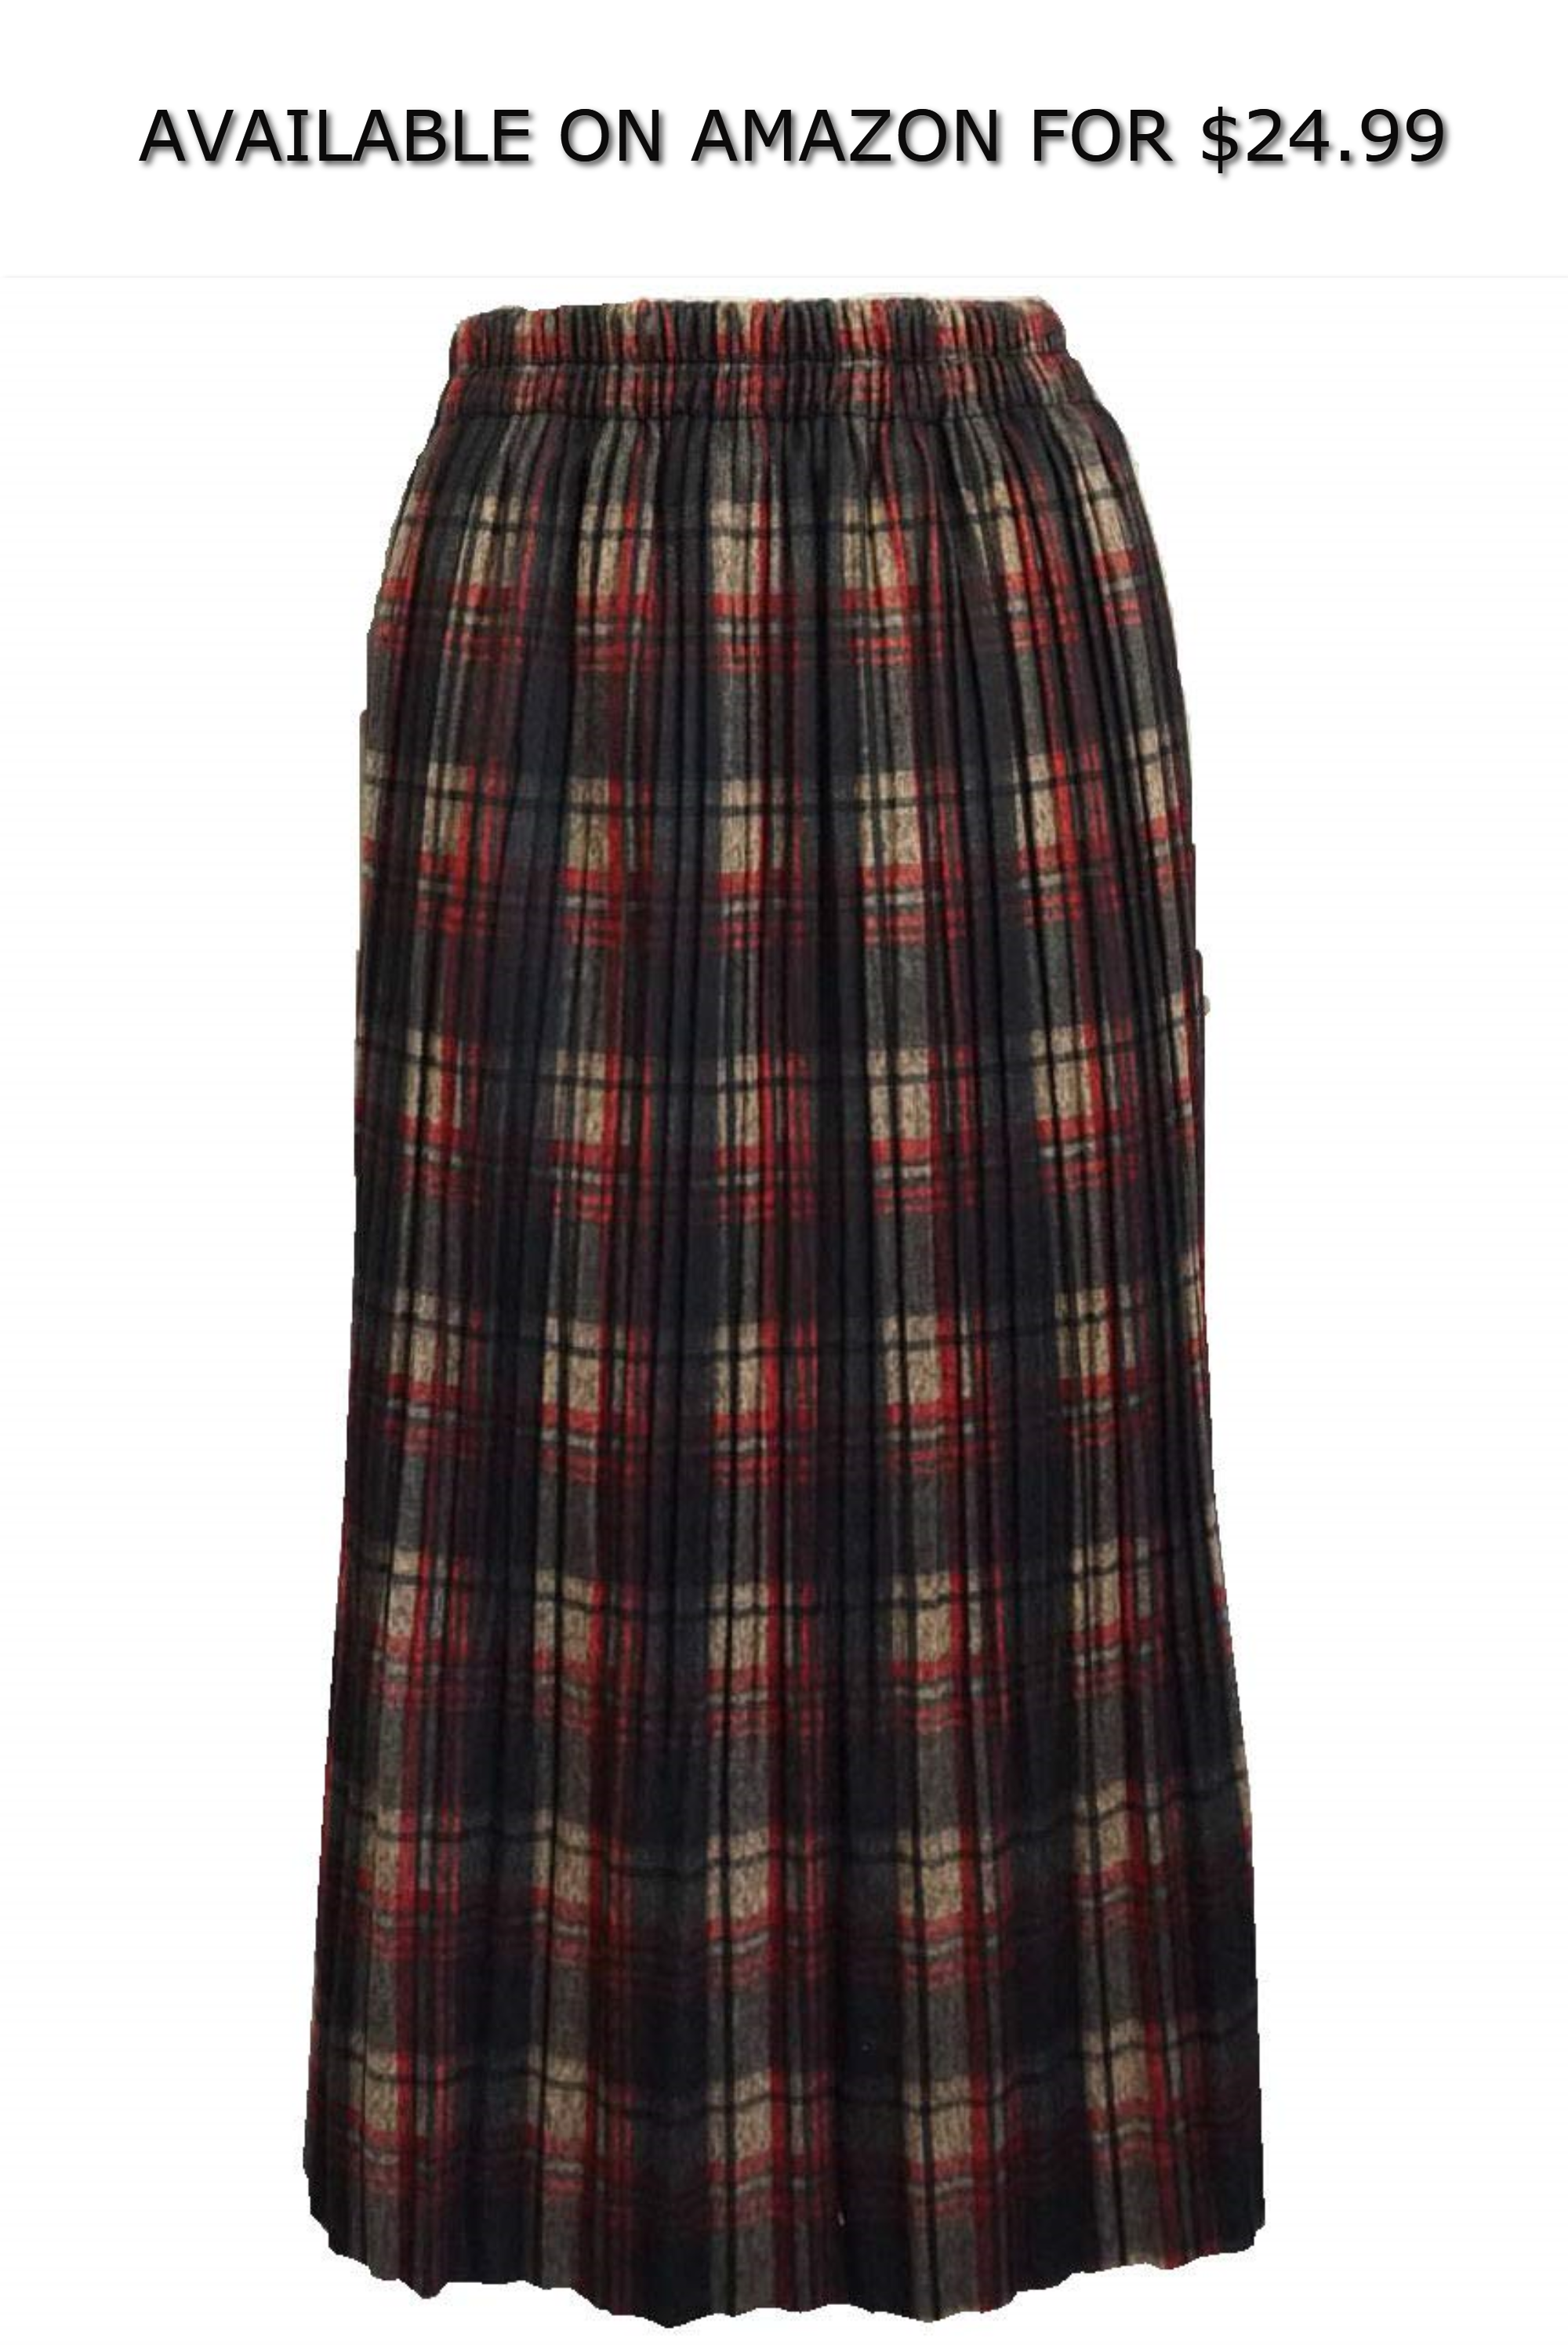 eaff5d1592 SEOULSTORY7 Women s Winter Long Plaid Flared Skirt W Elastic Waist Band ◇  AVAILABLE ON AMAZON FOR   24.99 ◇ Material Acrylic